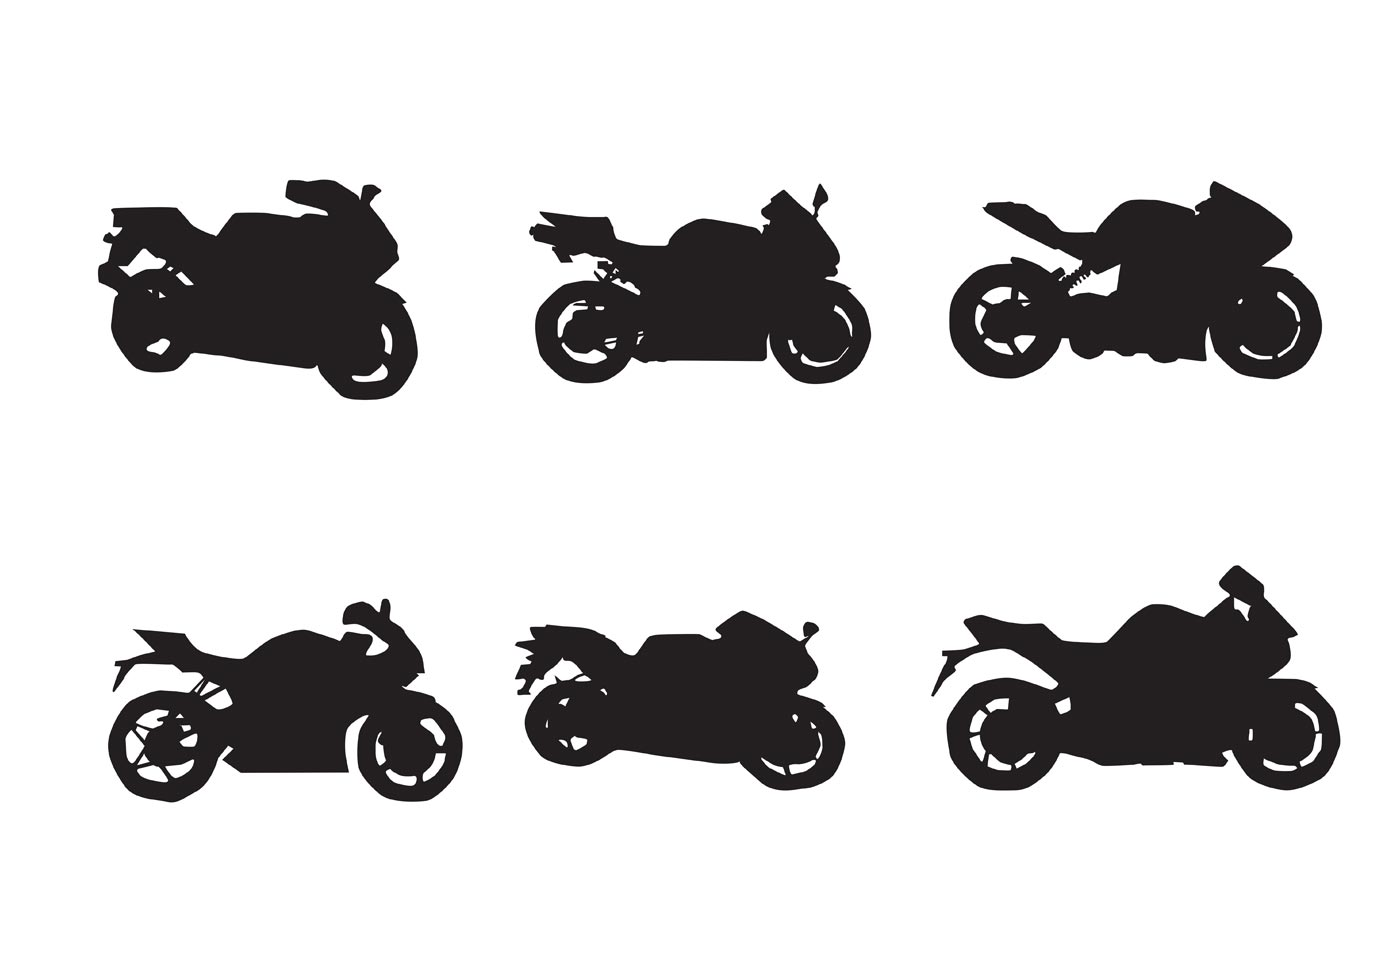 vector free download motorcycle - photo #1